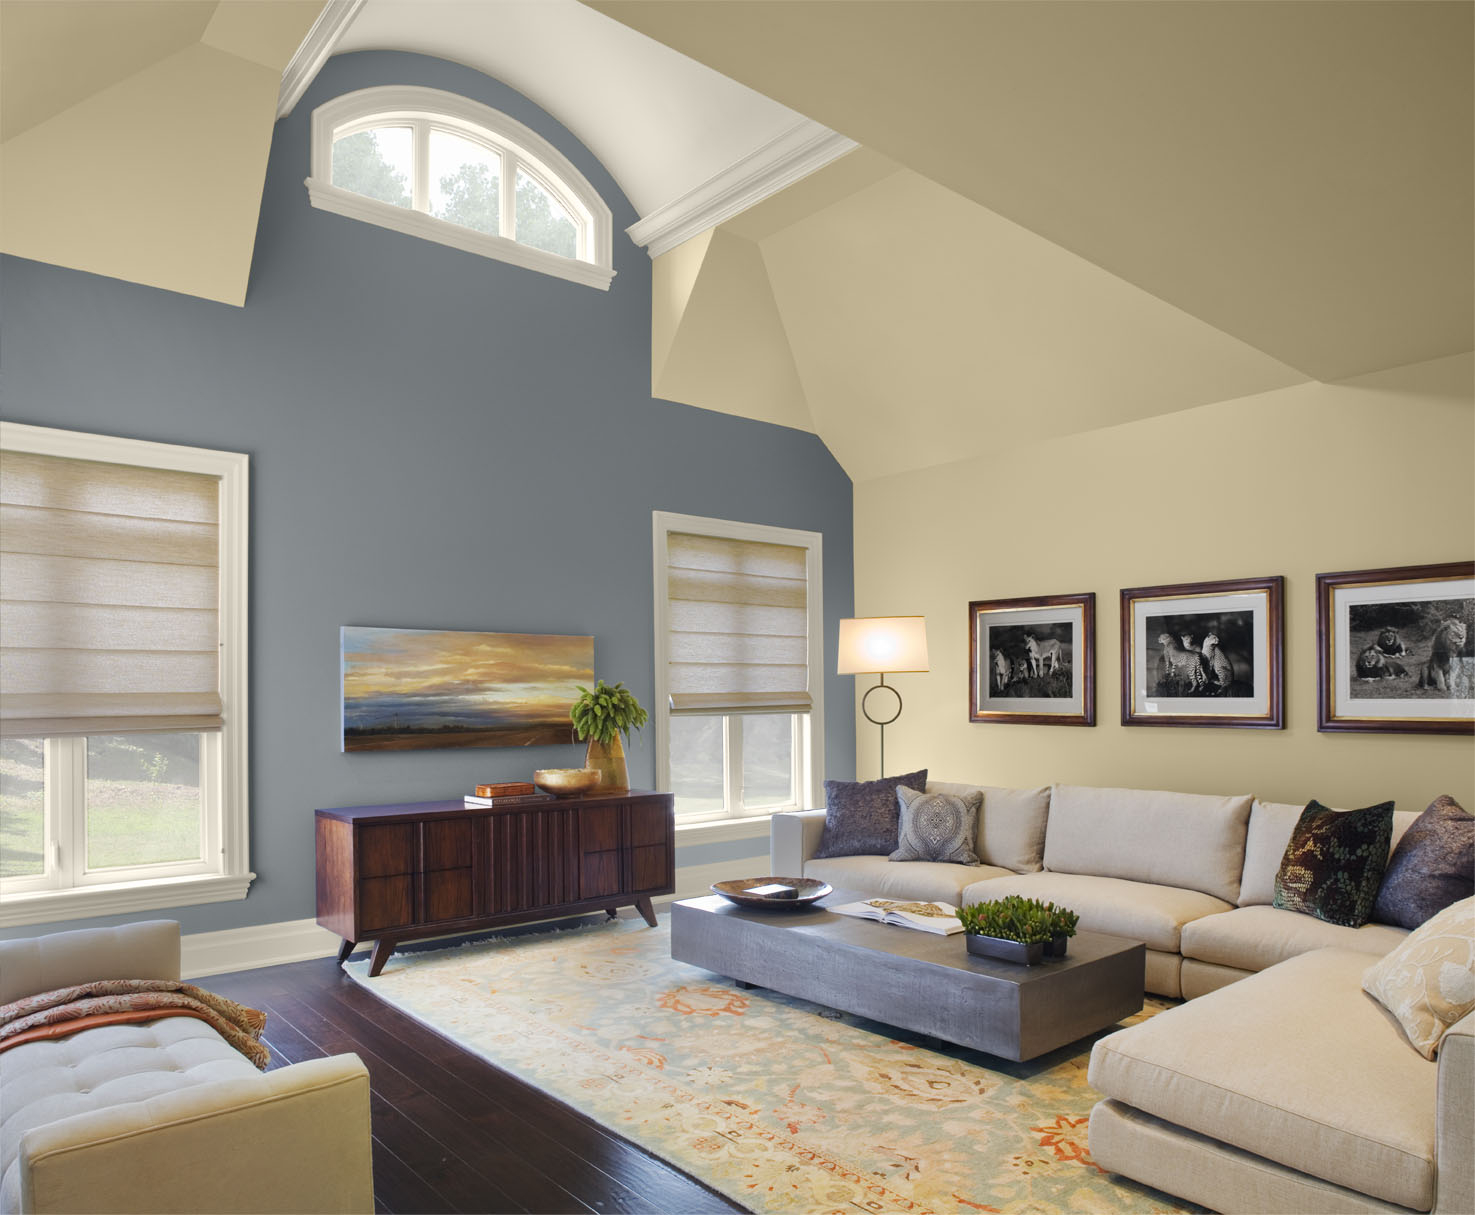 30 excellent living room paint color ideas slodive - Popular living room paint colors ...